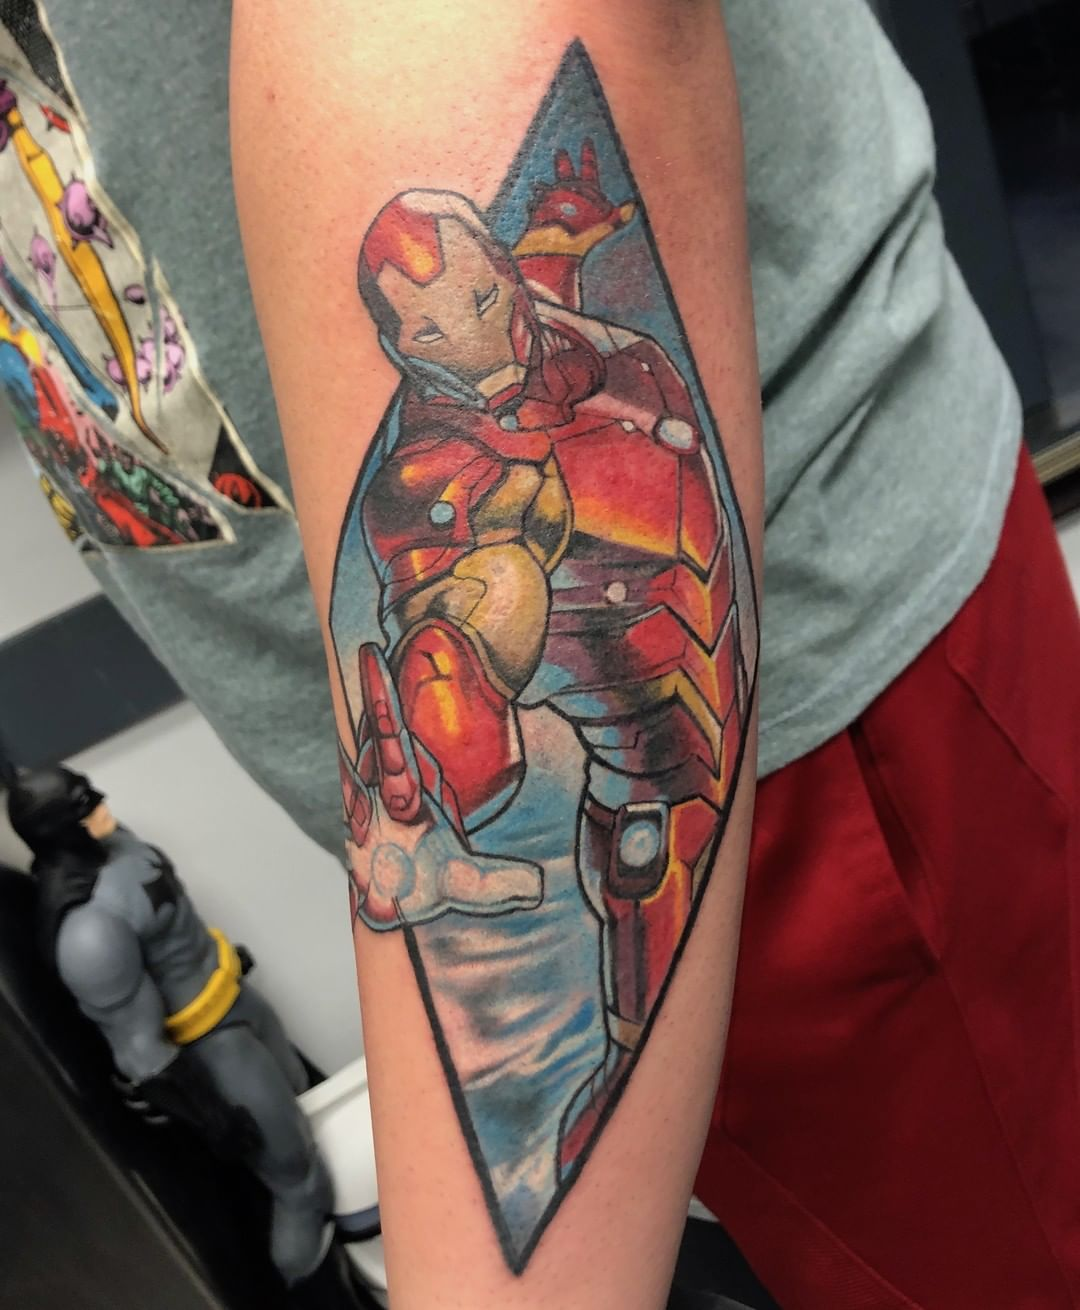 Book lovers tattoo of Iron Man